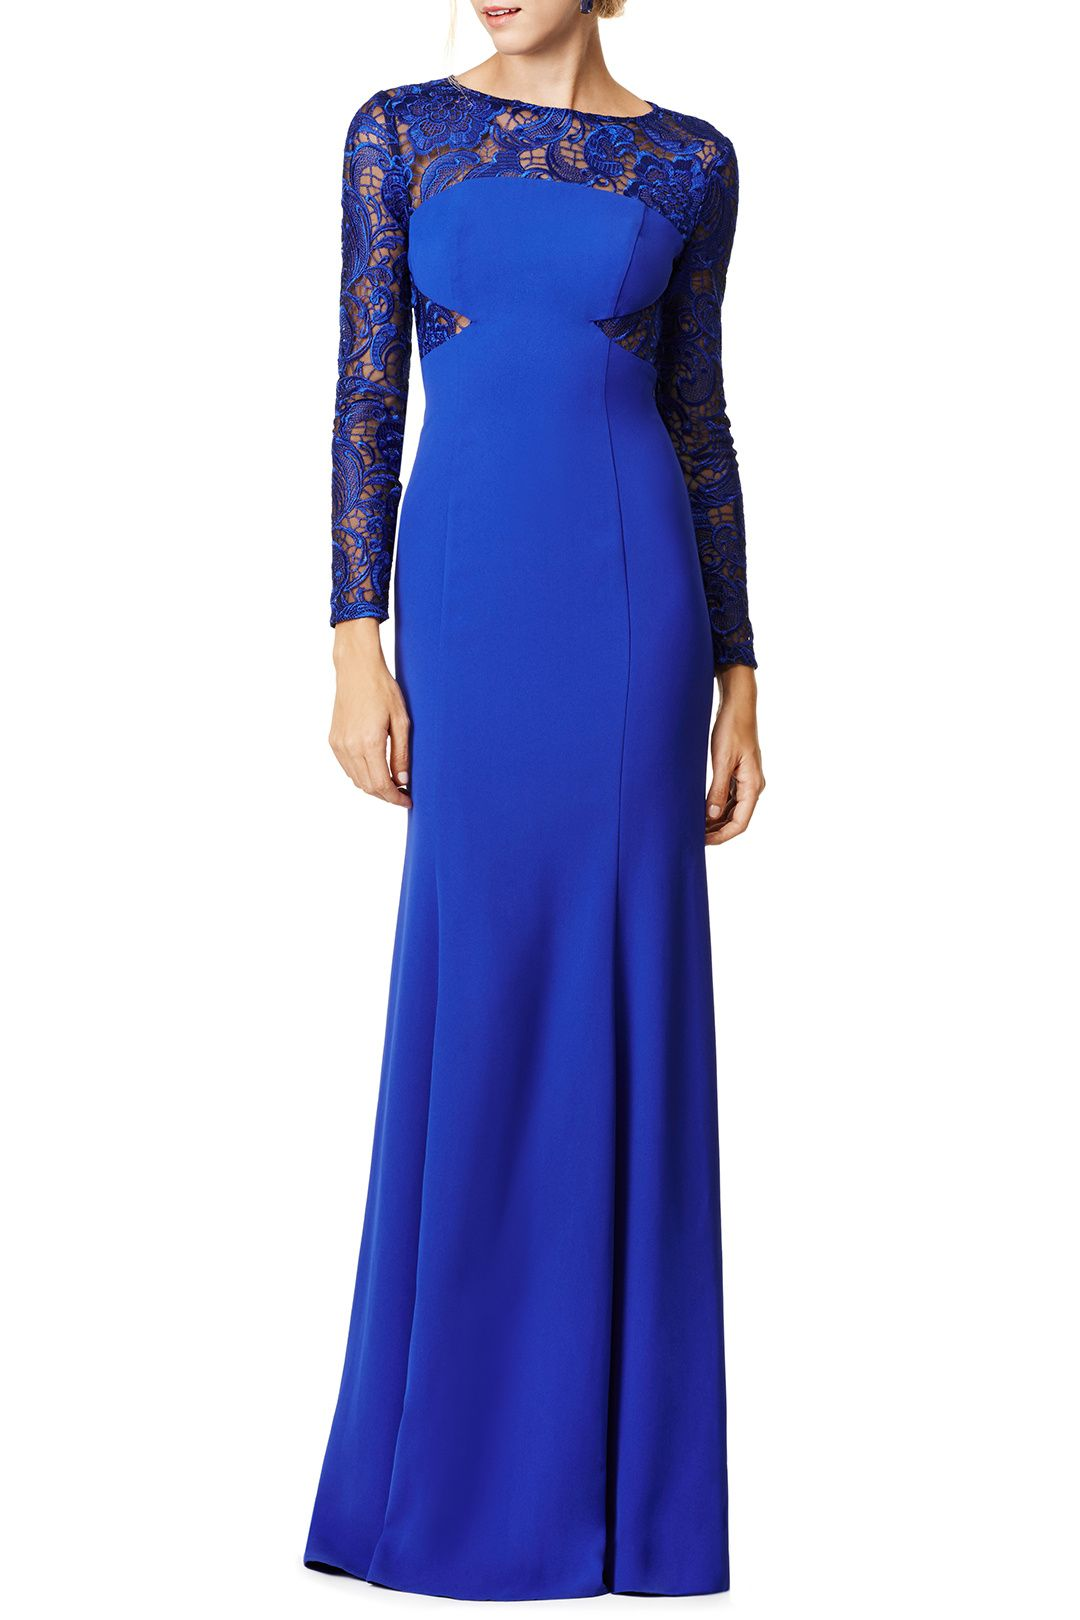 Wrapped in blue gown letus a dress the real issues pinterest